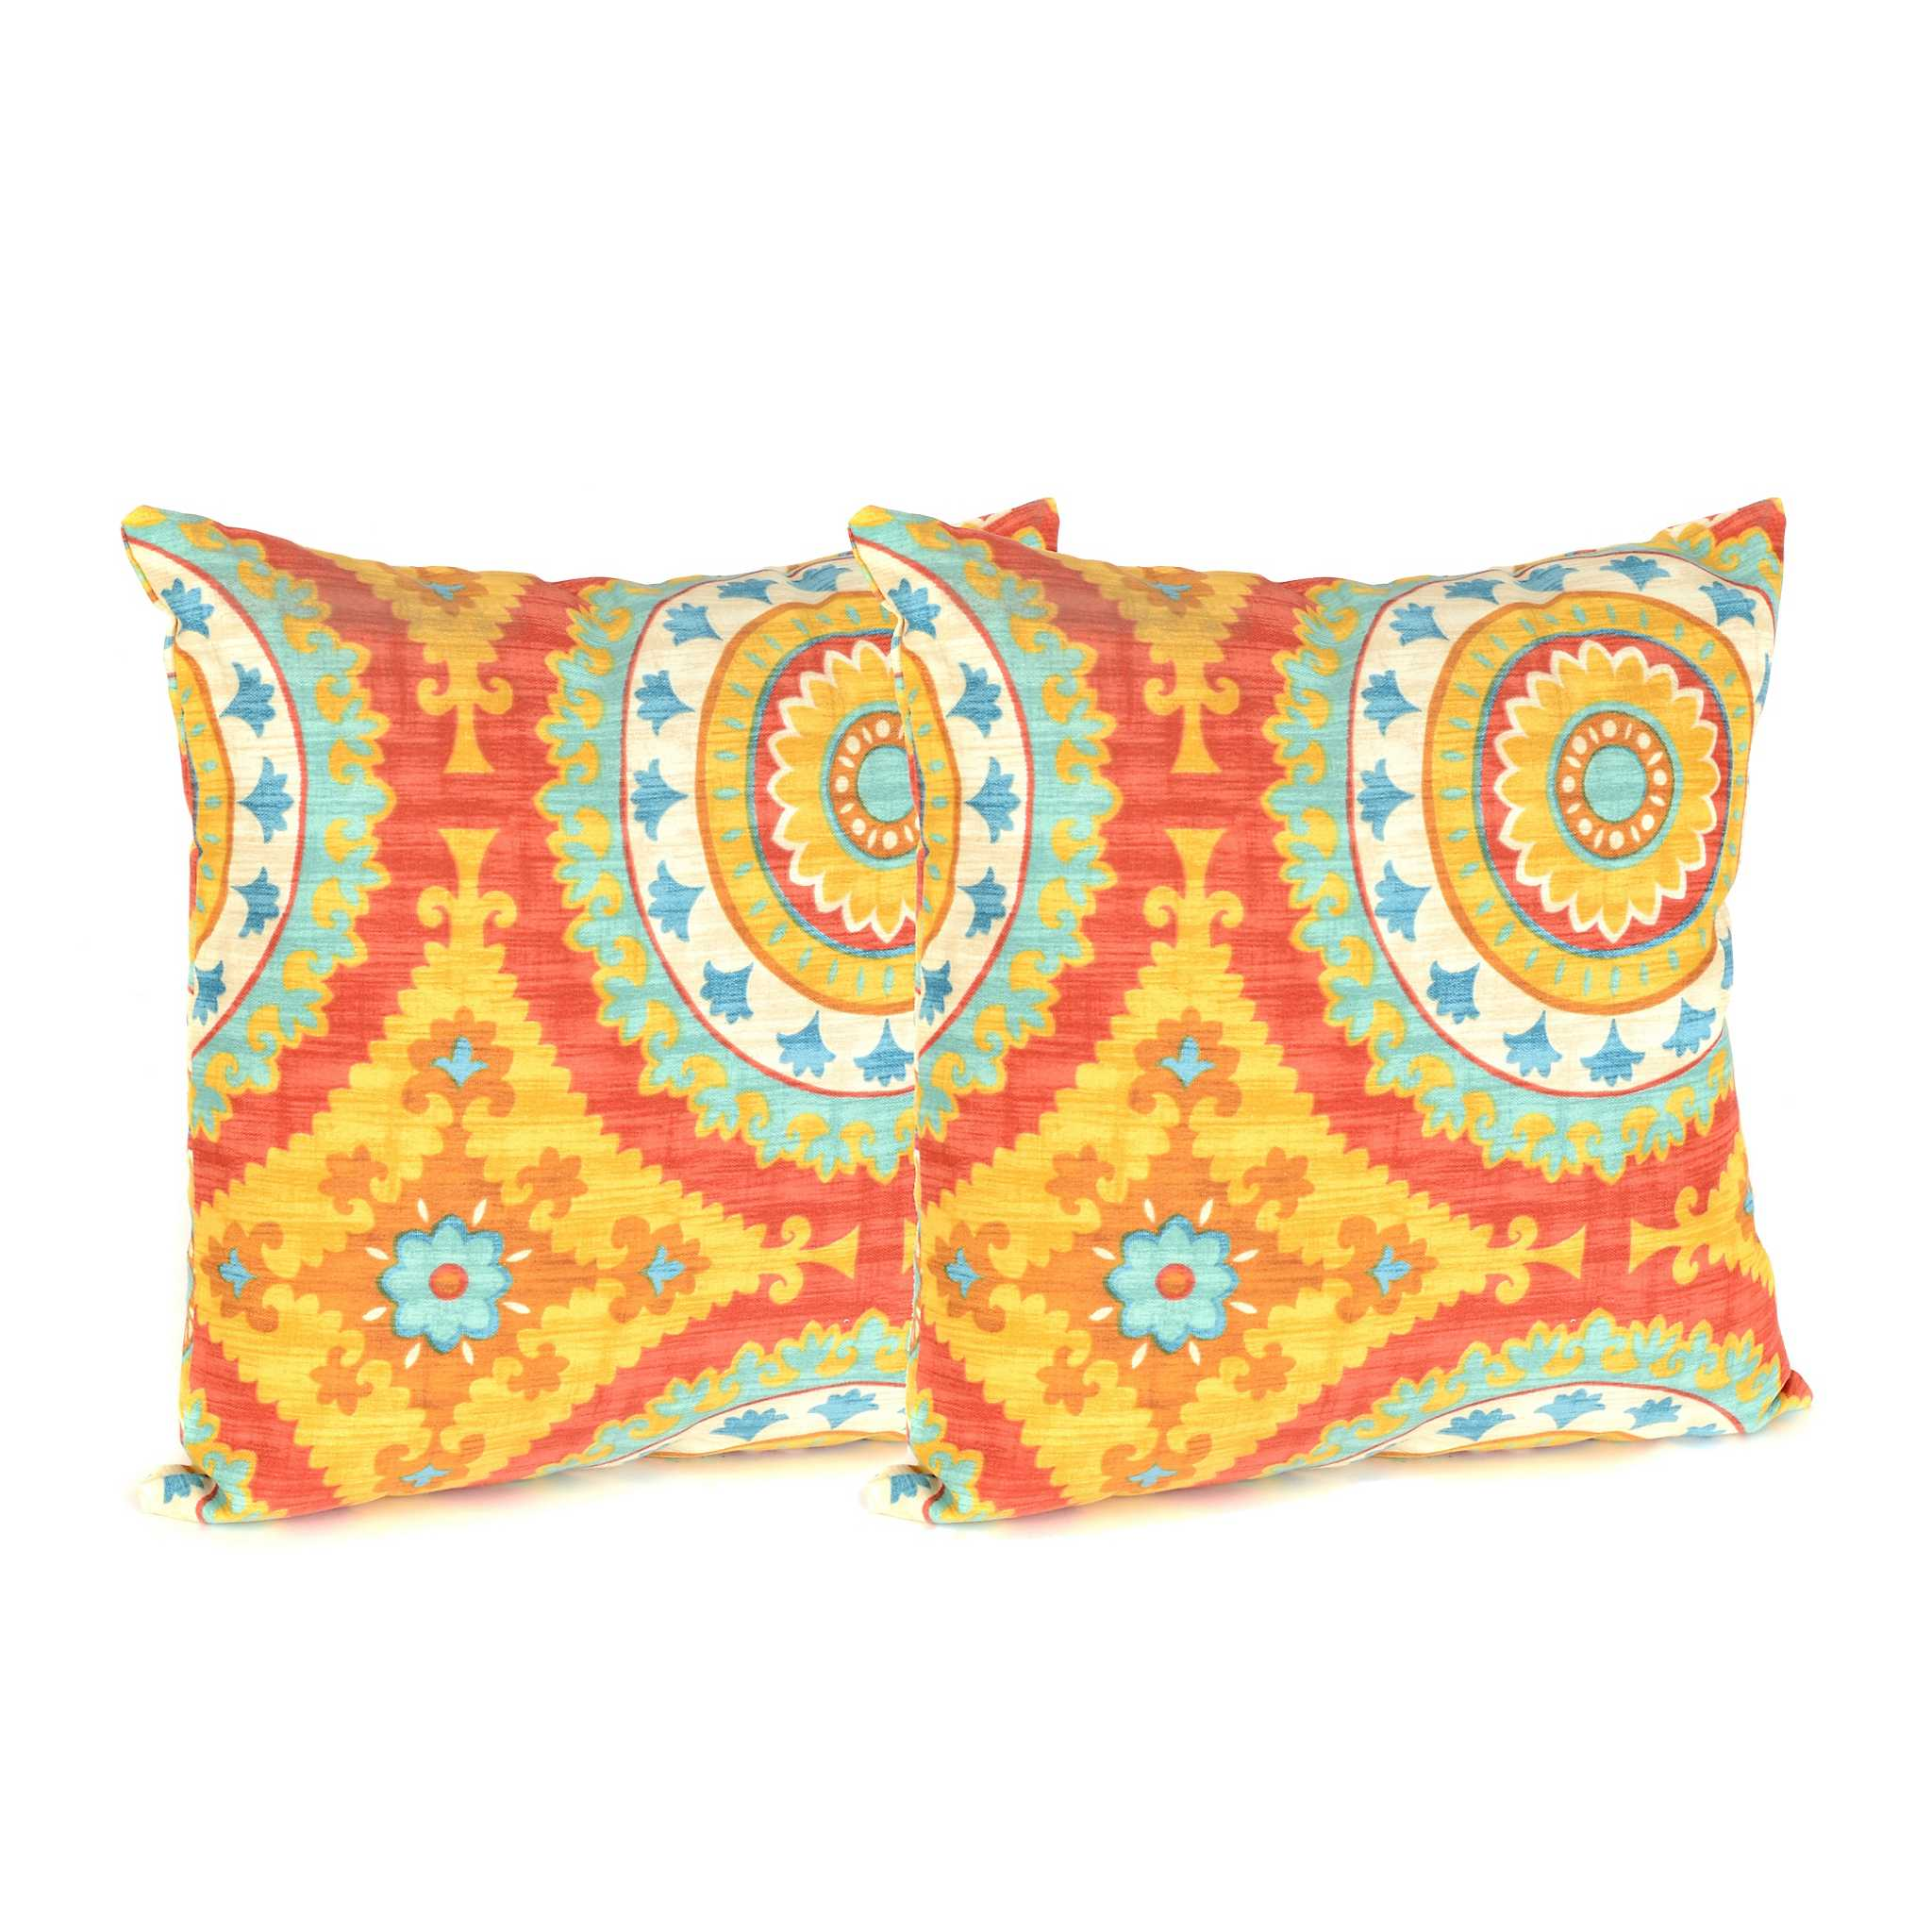 Sunset Plaza Outdoor Accent Pillows, Set of 2 Kirklands